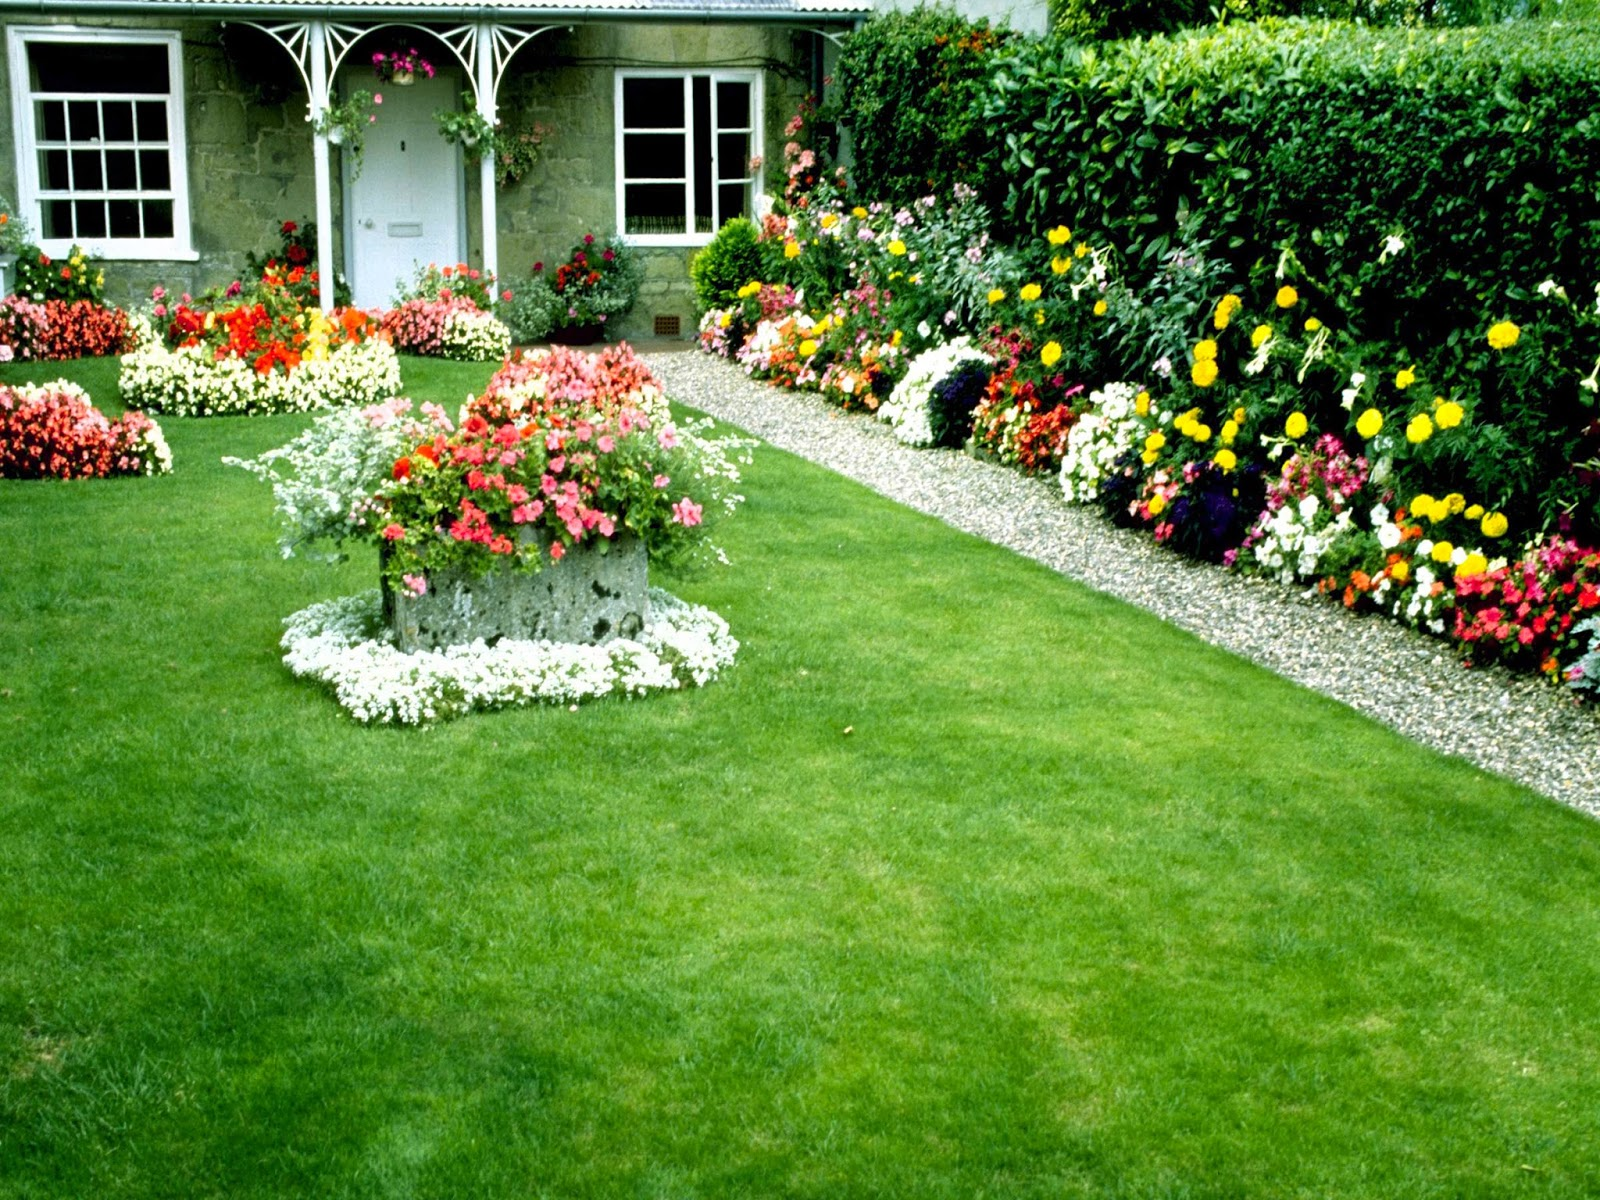 Some beautiful garden best wallpaper views for Flower garden landscape